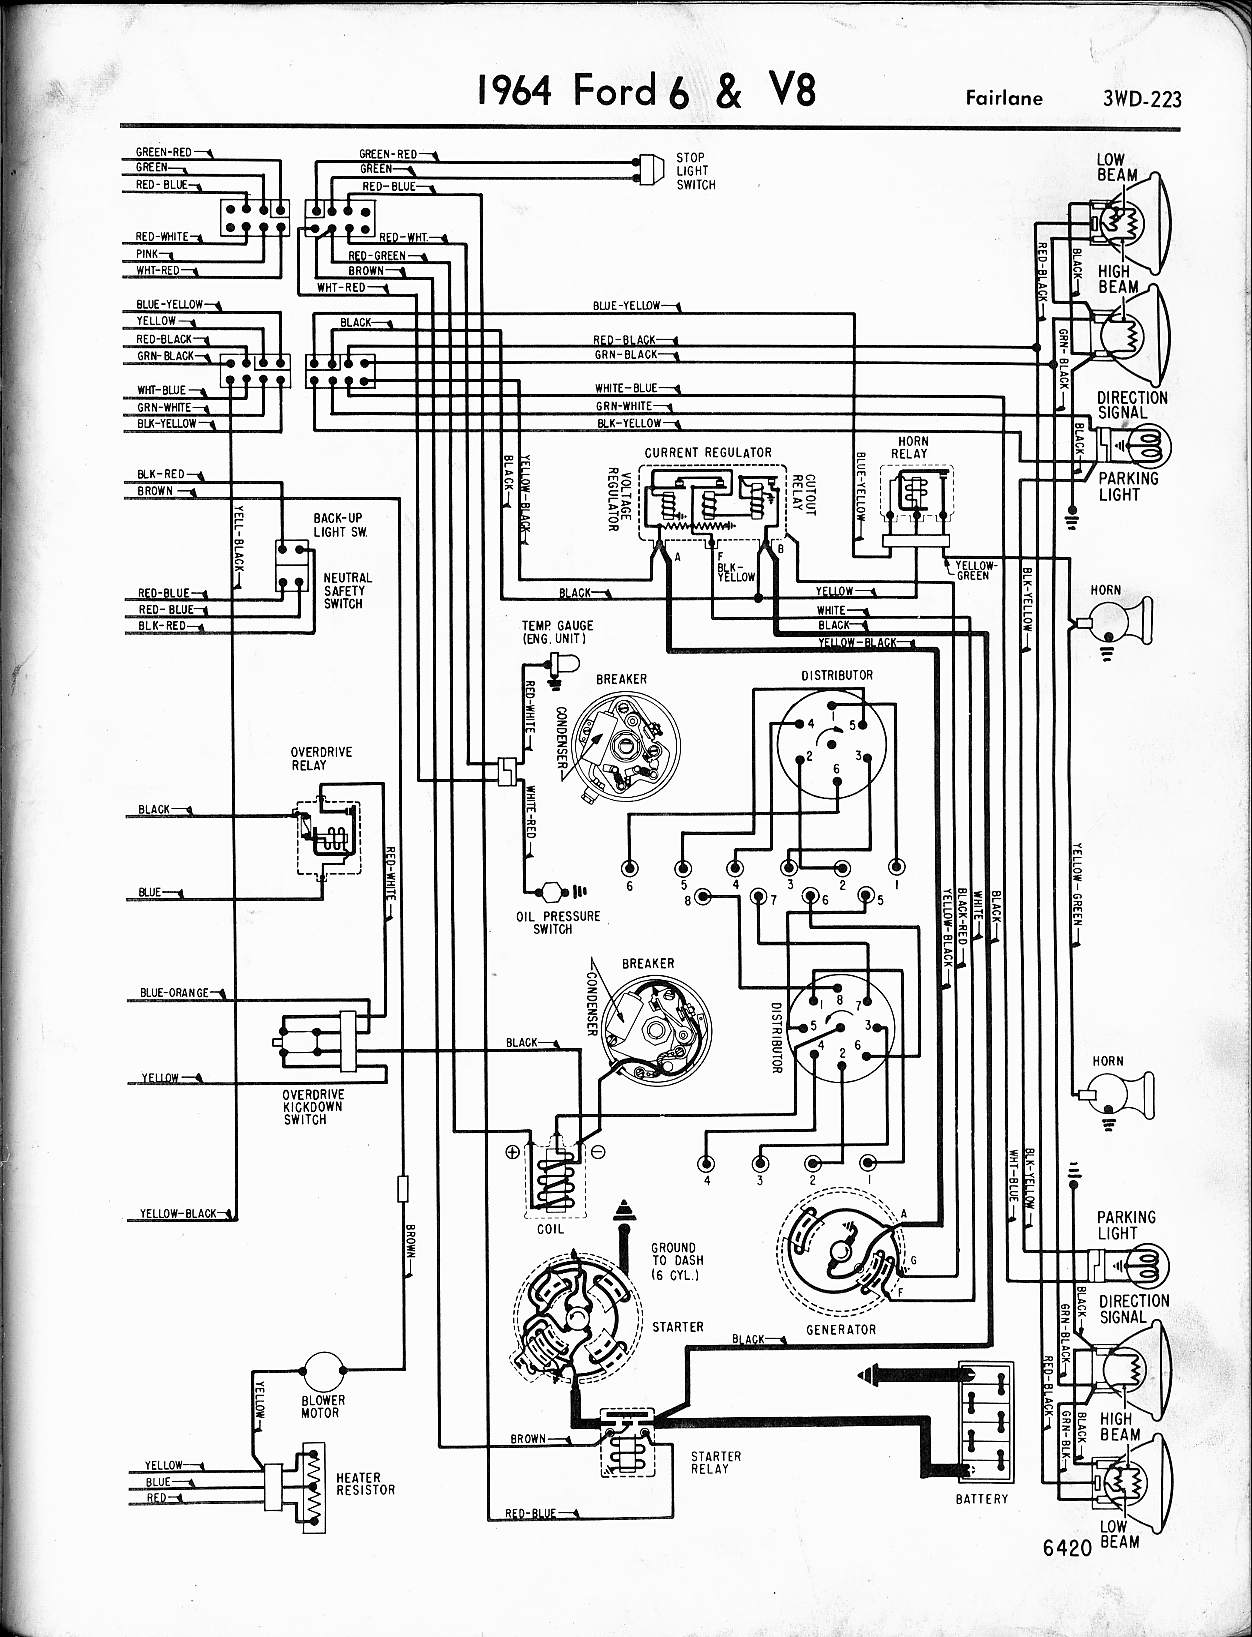 MWire5765 223 1964 ford fairlane wiring diagram ford ignition system wiring 1964 ford f100 wiring diagram at crackthecode.co